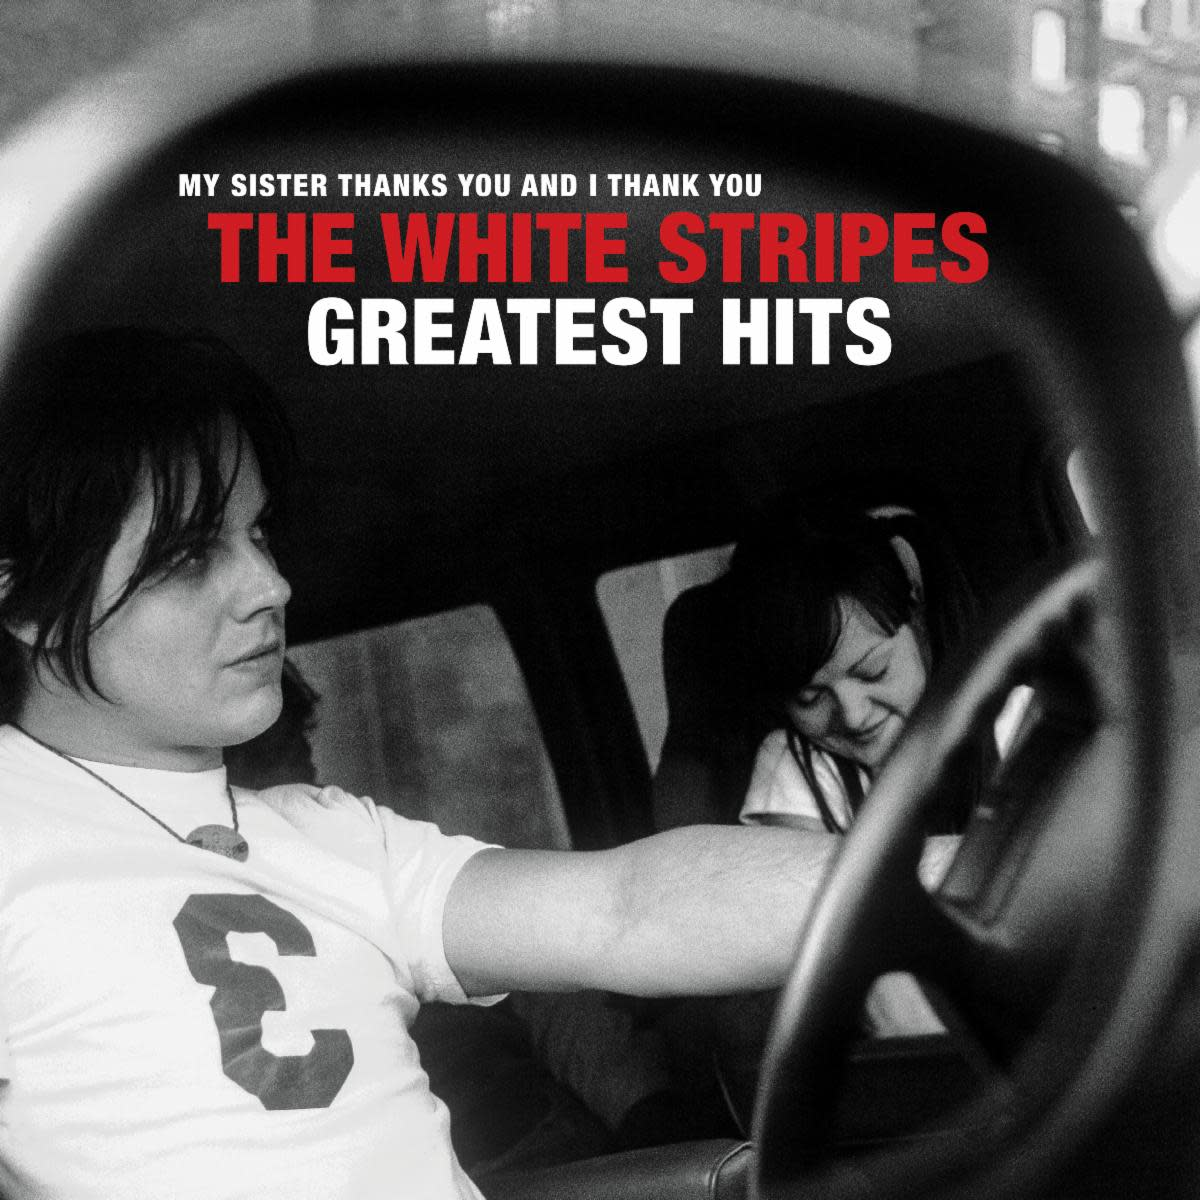 TMR_700_TheWhiteStripes_GreatestHits_FRONT